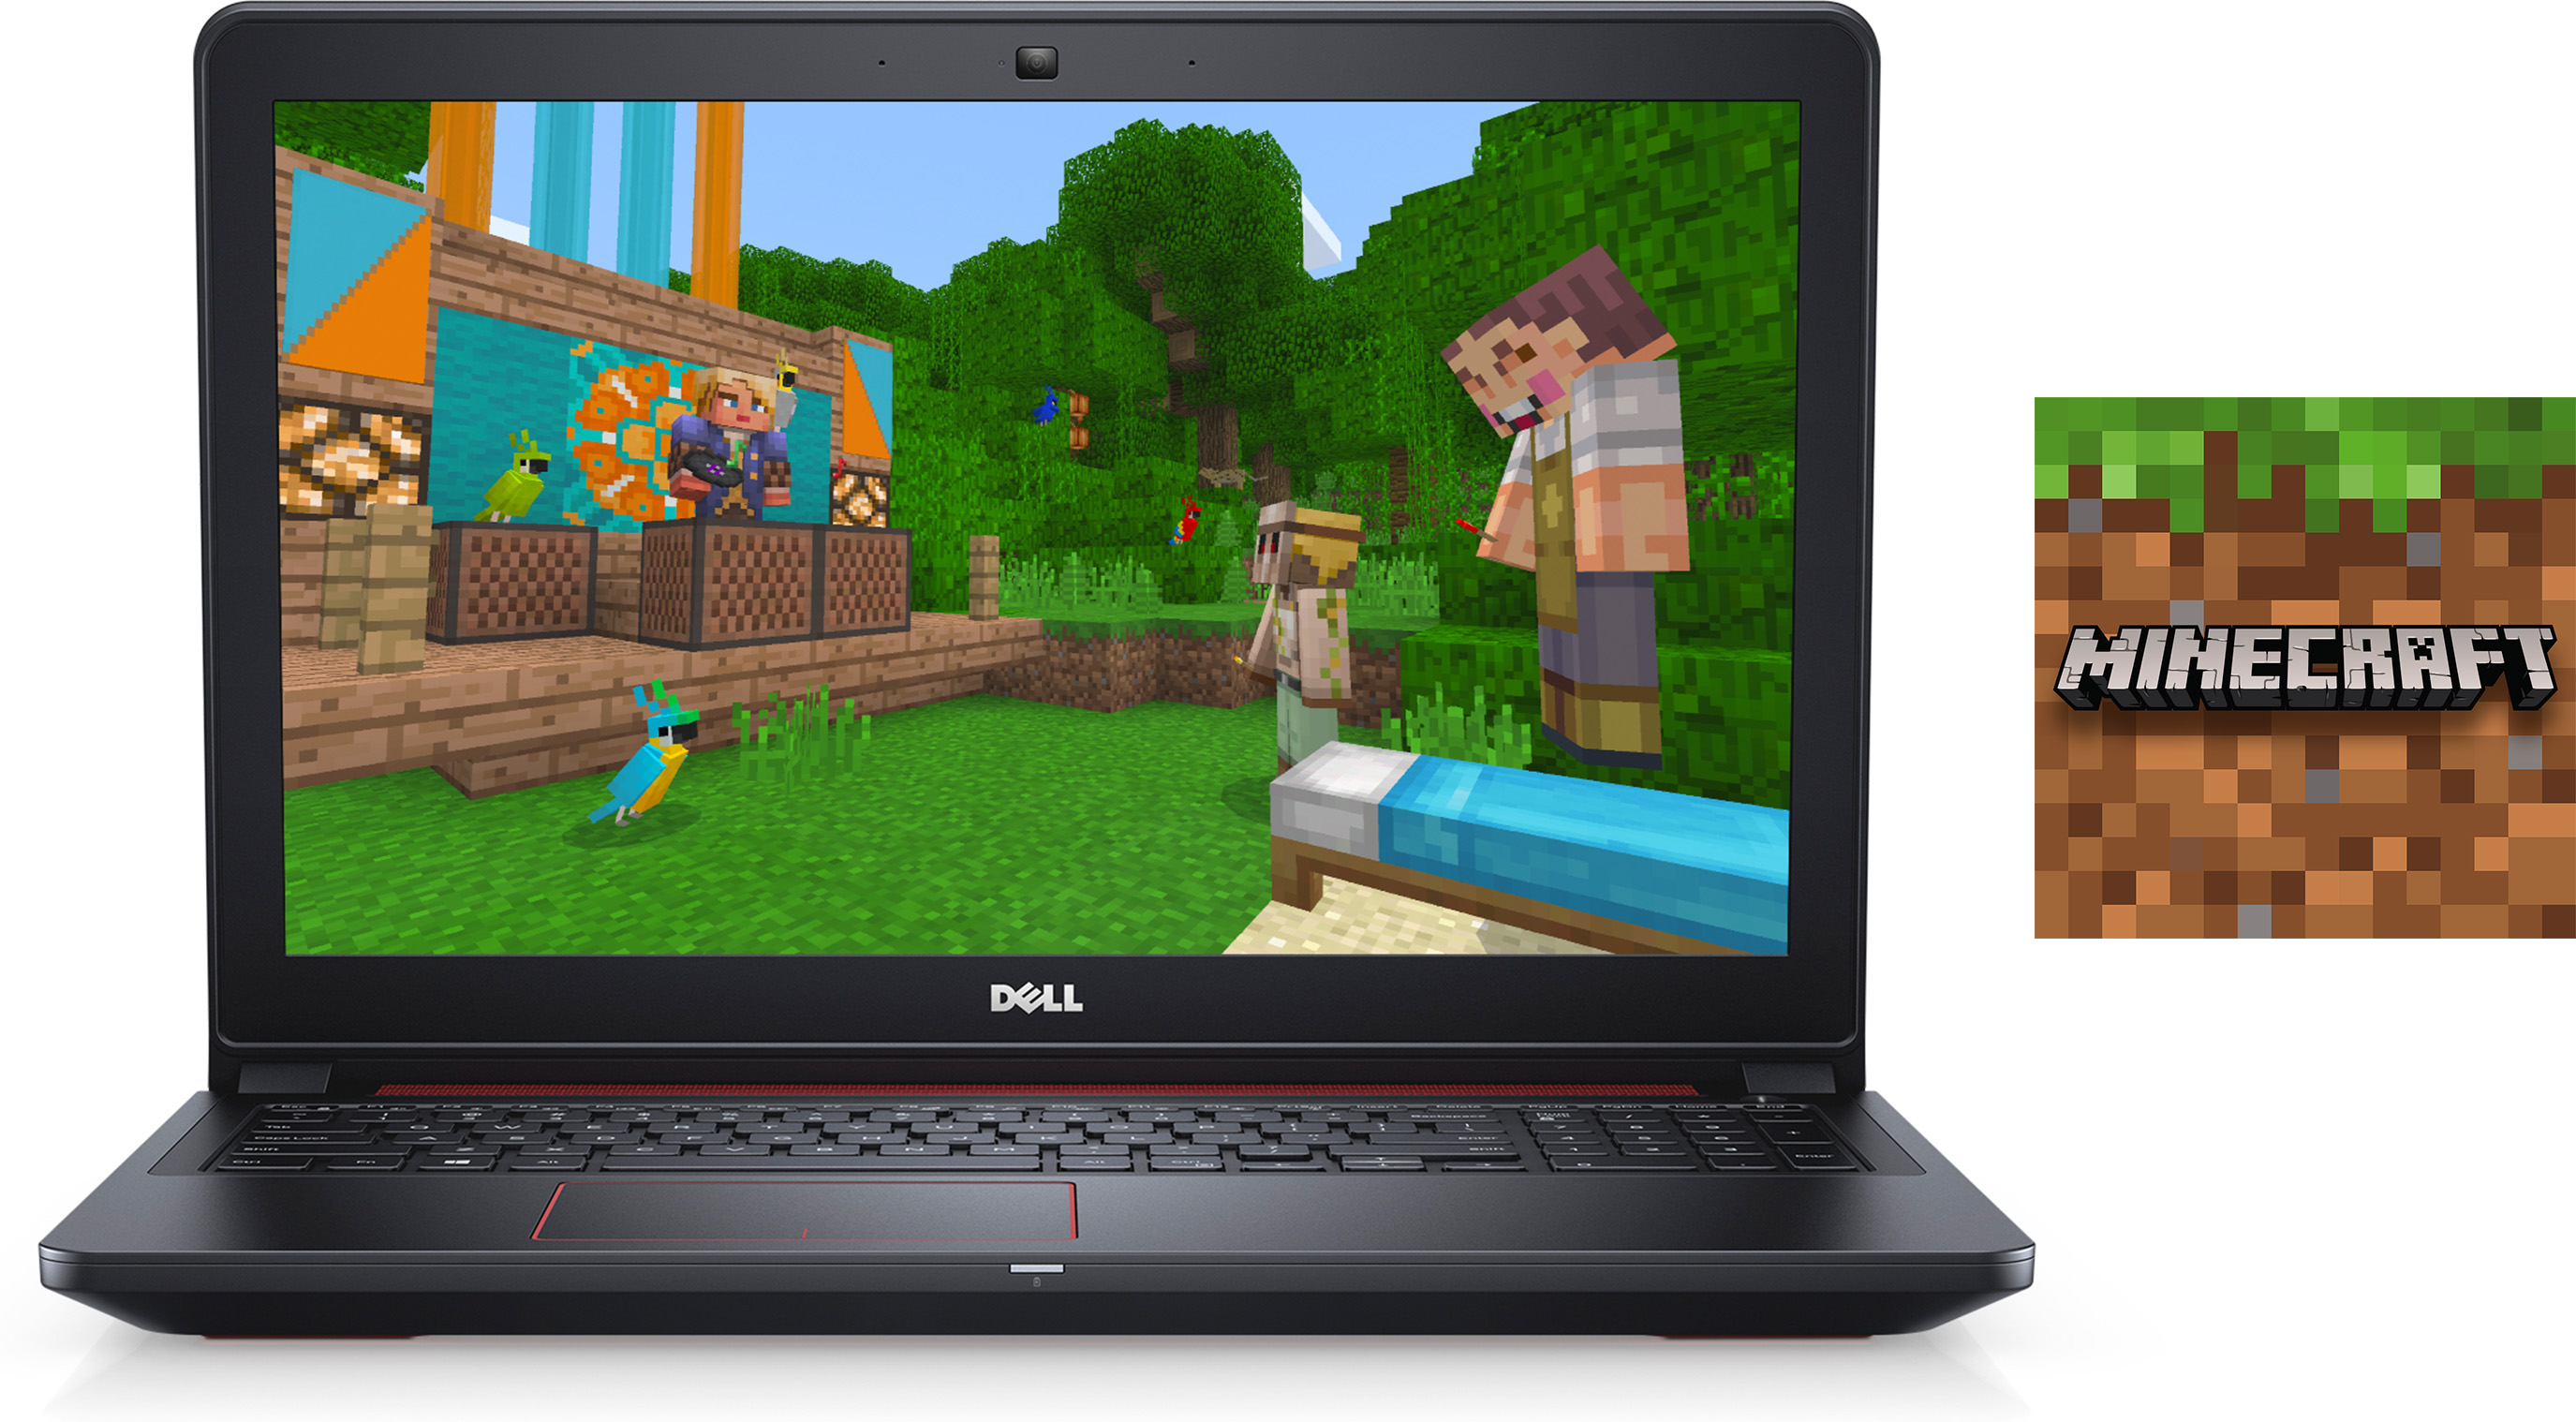 Dell Inspiron 15 with Minecraft Windows 10 Edition bundle